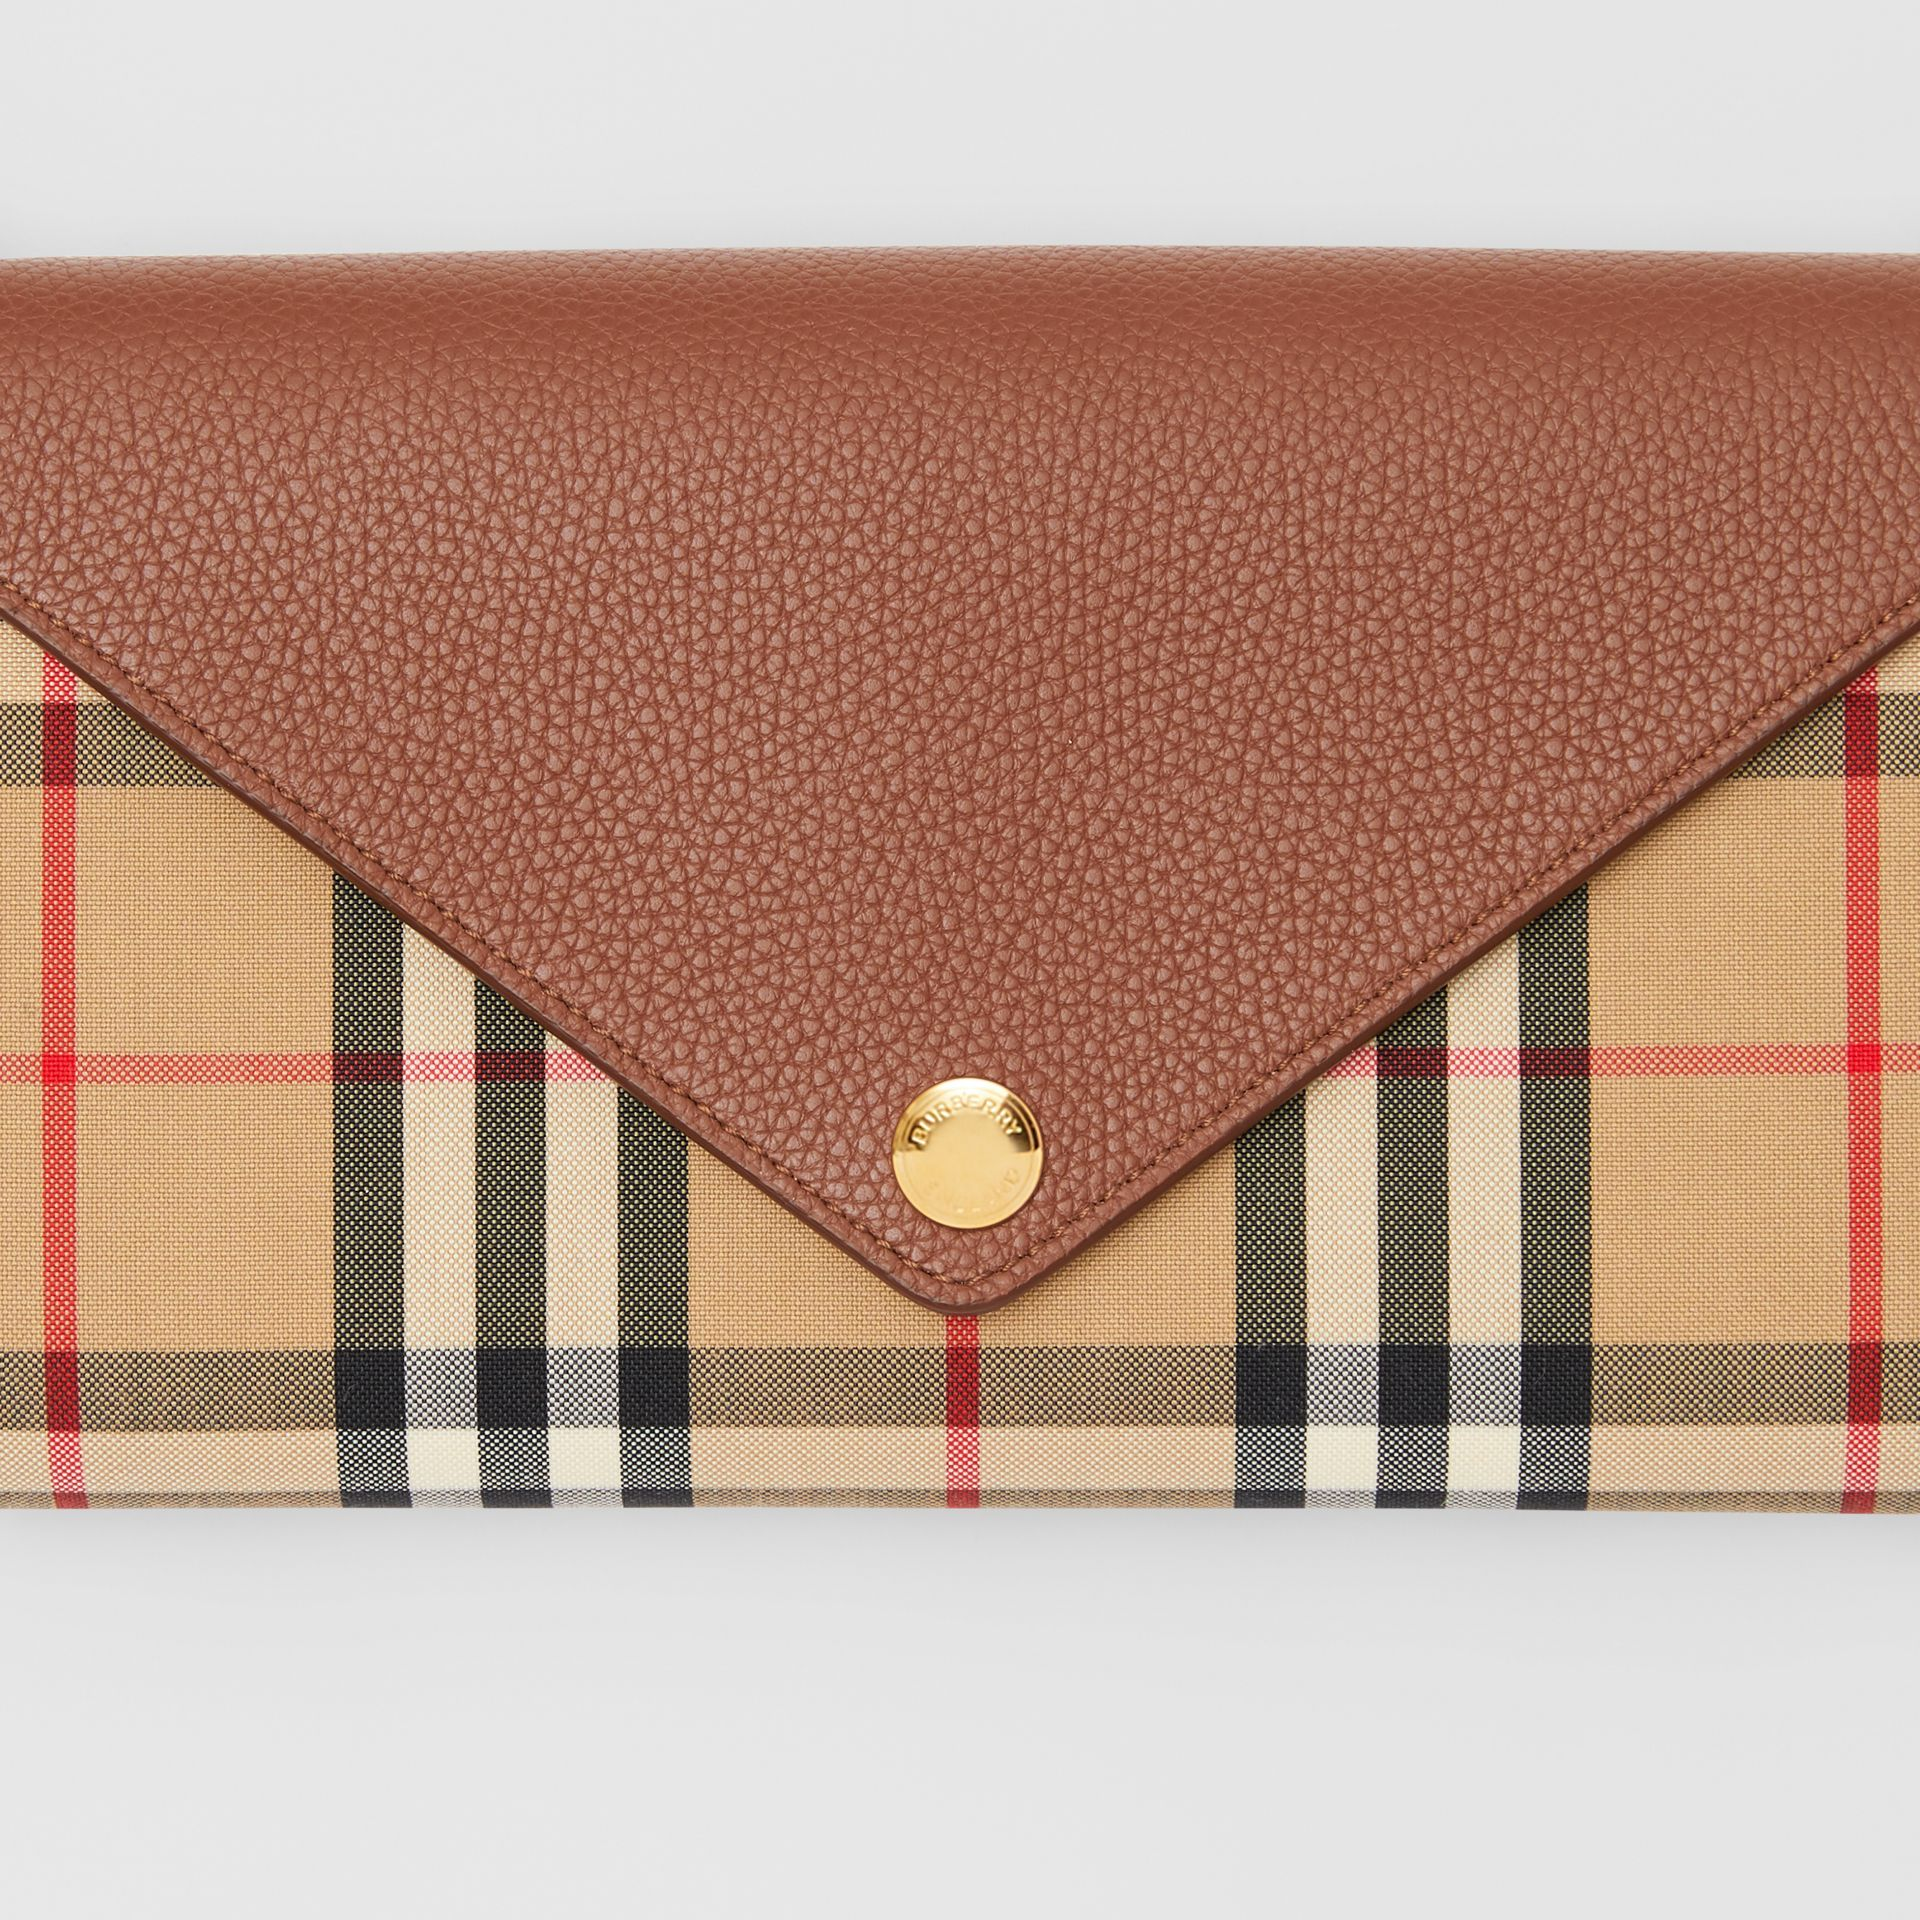 Vintage Check and Leather Wallet with Detachable Strap in Tan - Women | Burberry United Kingdom - gallery image 1